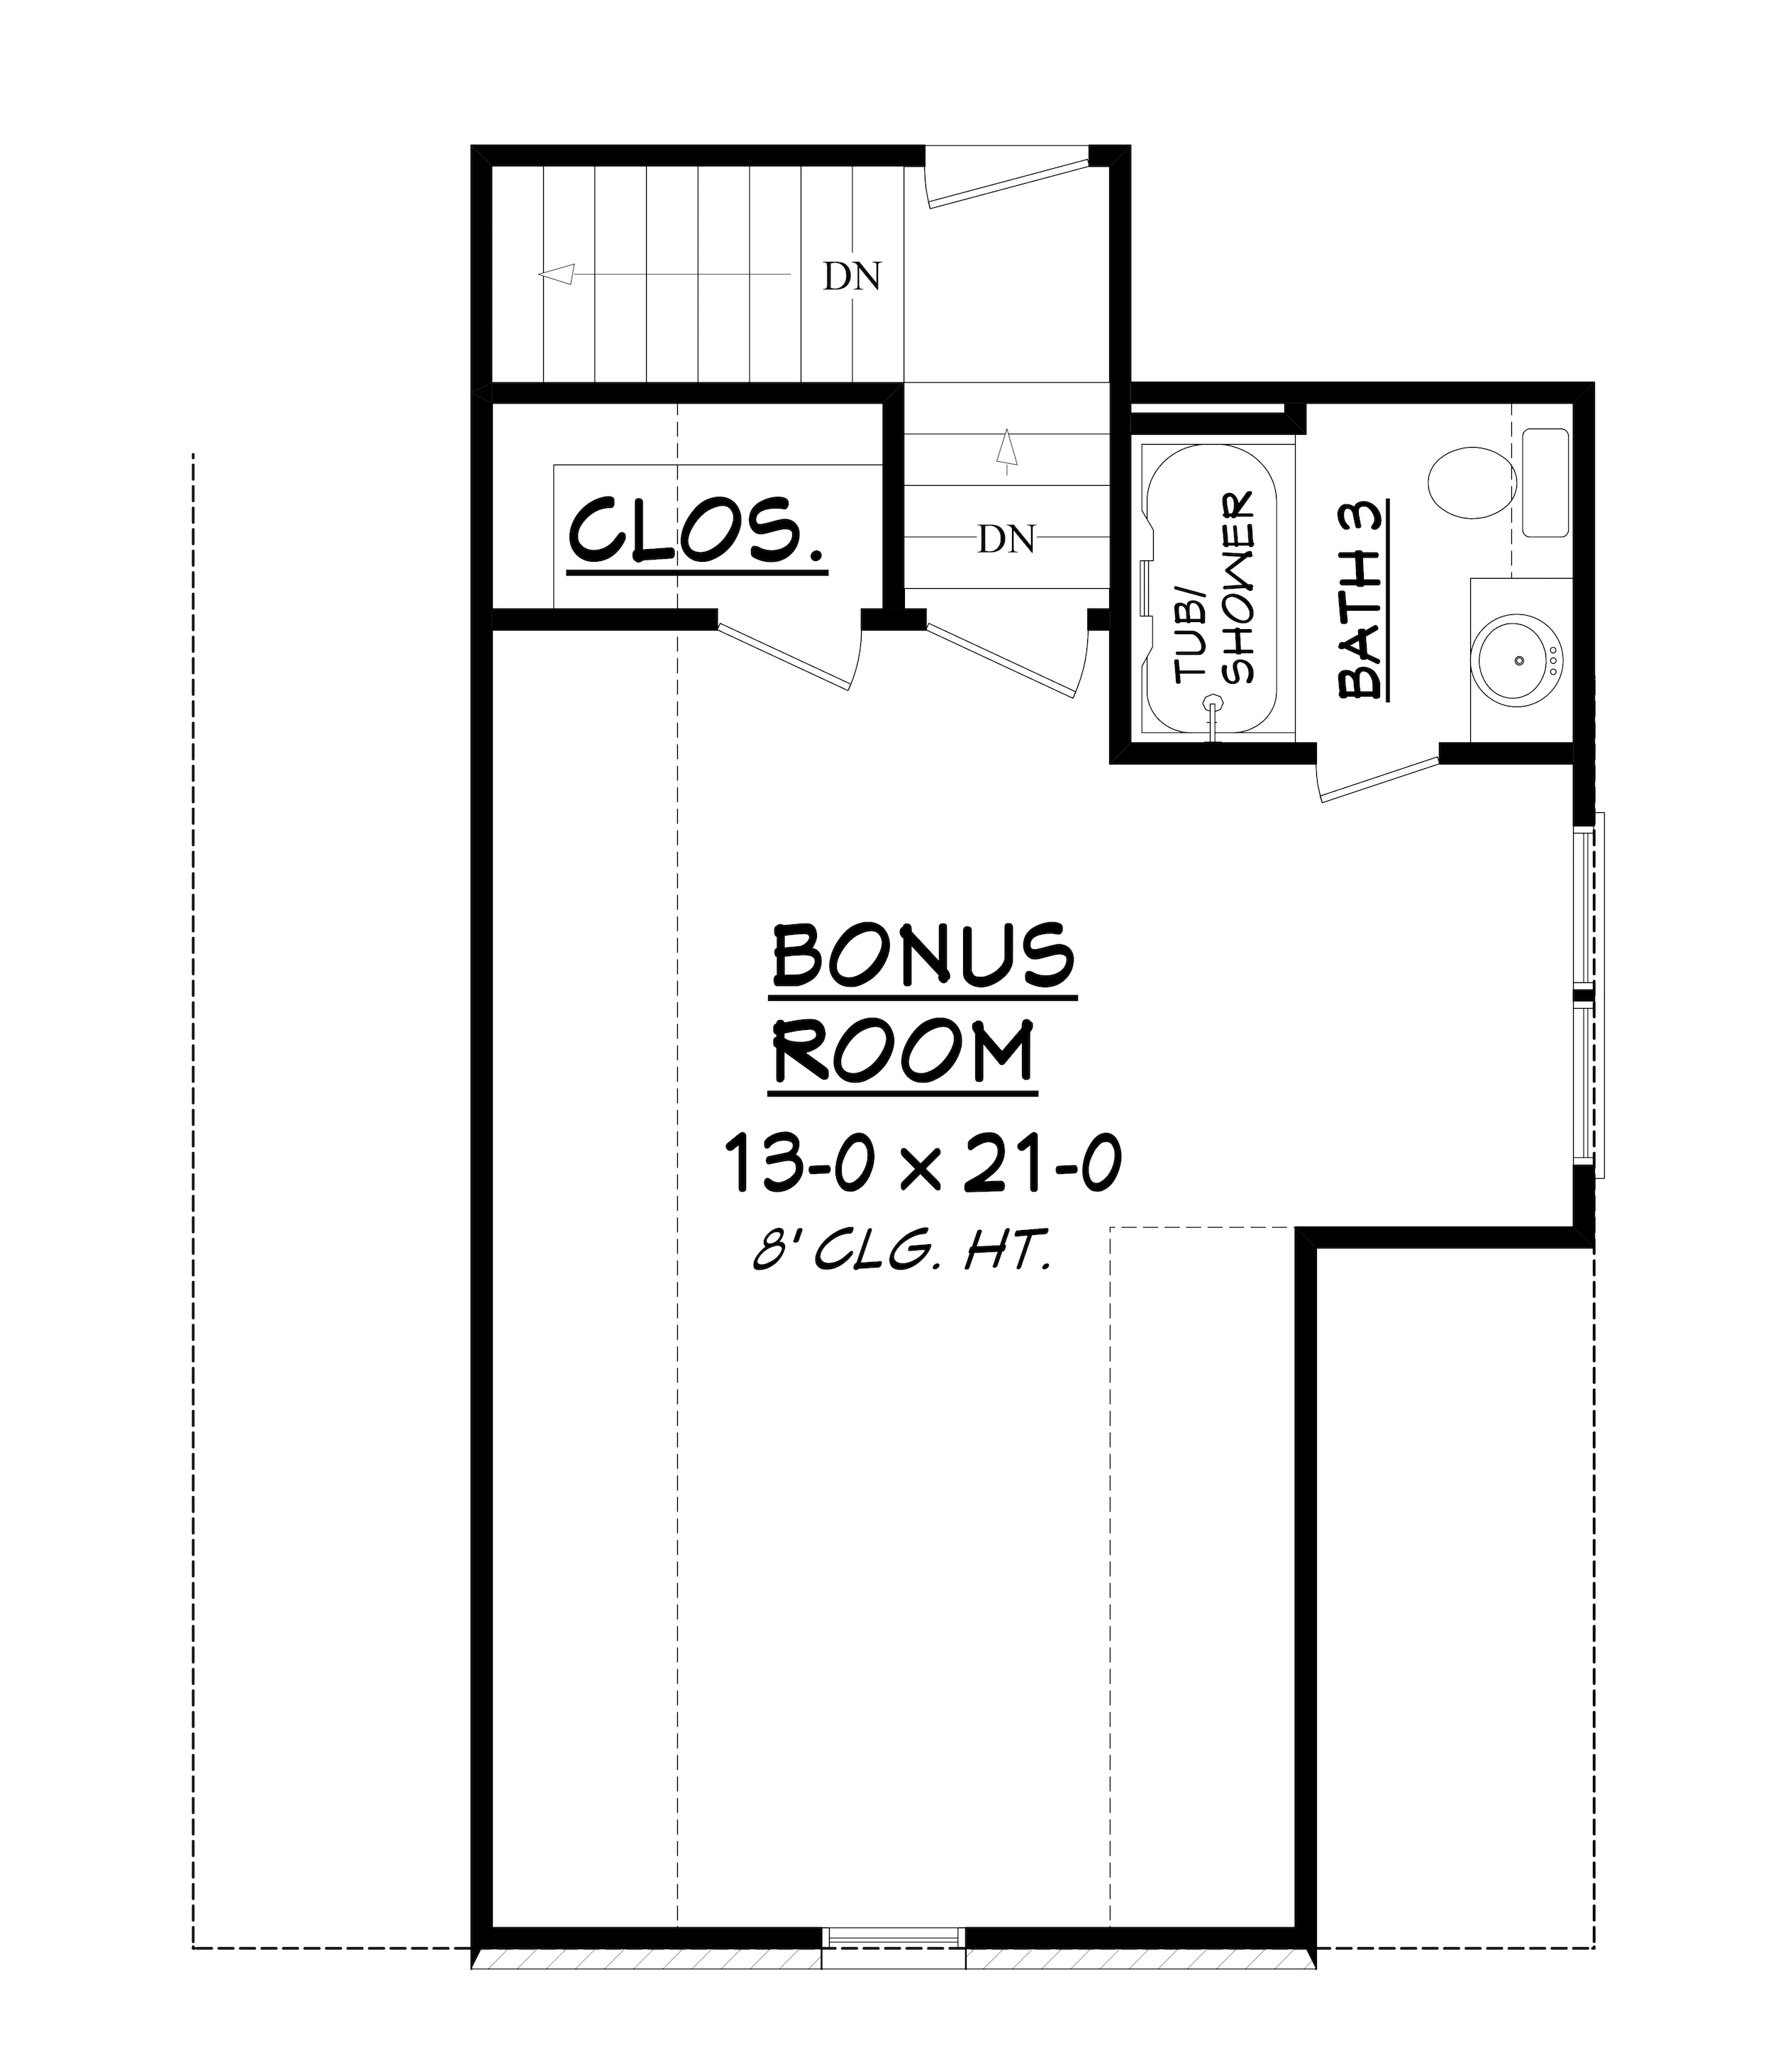 Acadian house plan 142 1155 3 bedrm 1870 sq ft home plan for Floor plans with bonus room